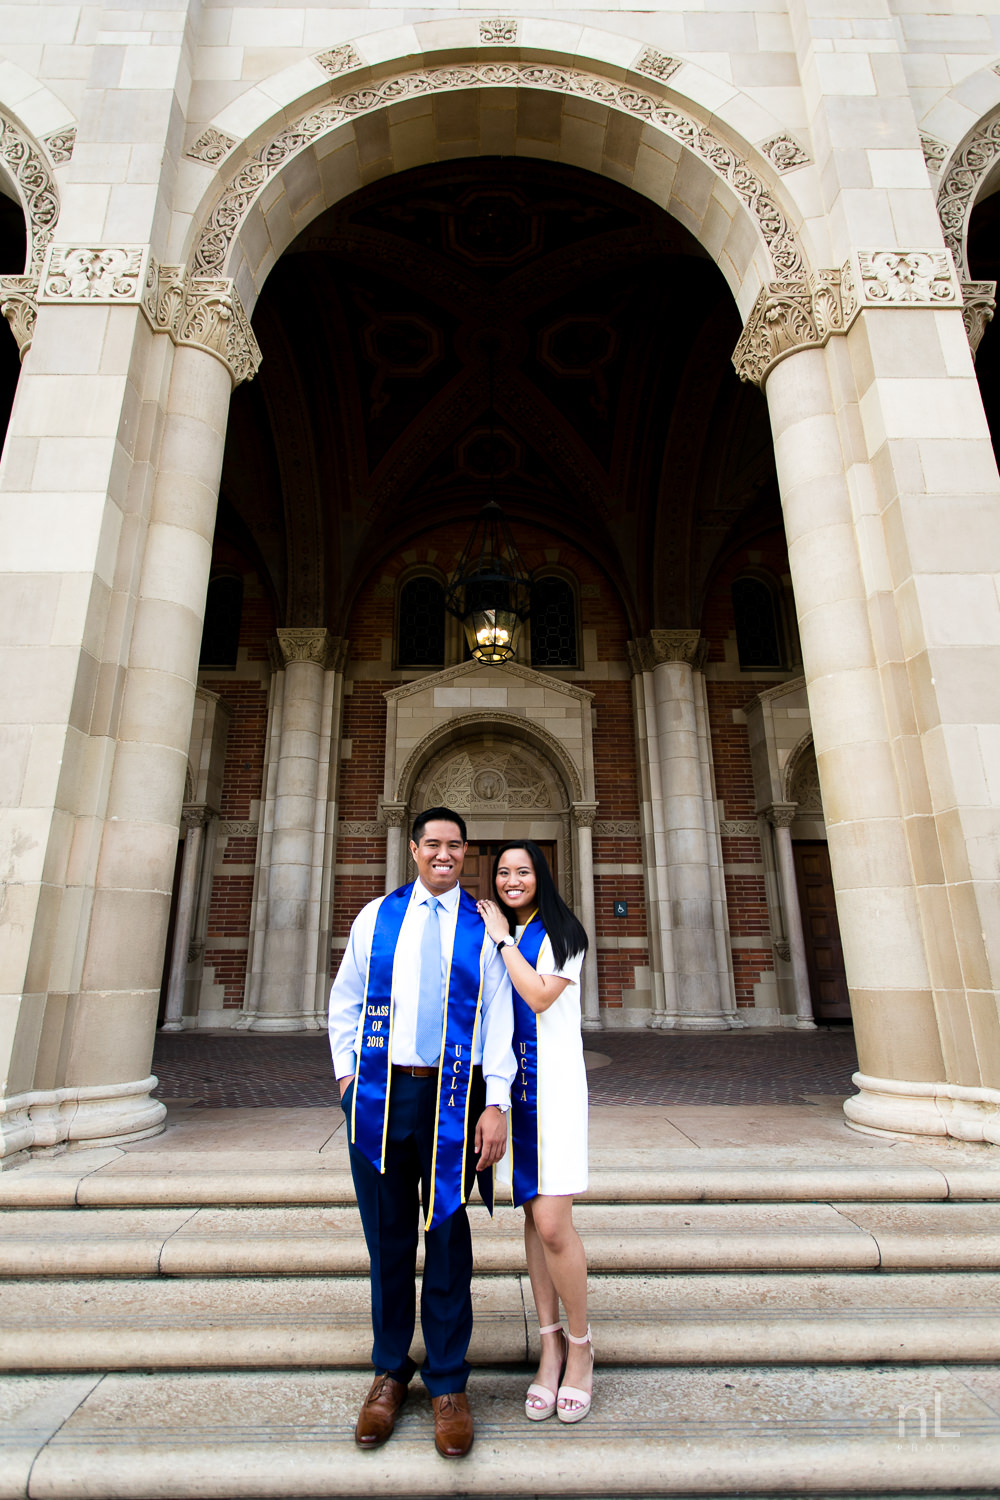 los-angeles-ucla-senior-graduation-portraits-7087.jpg